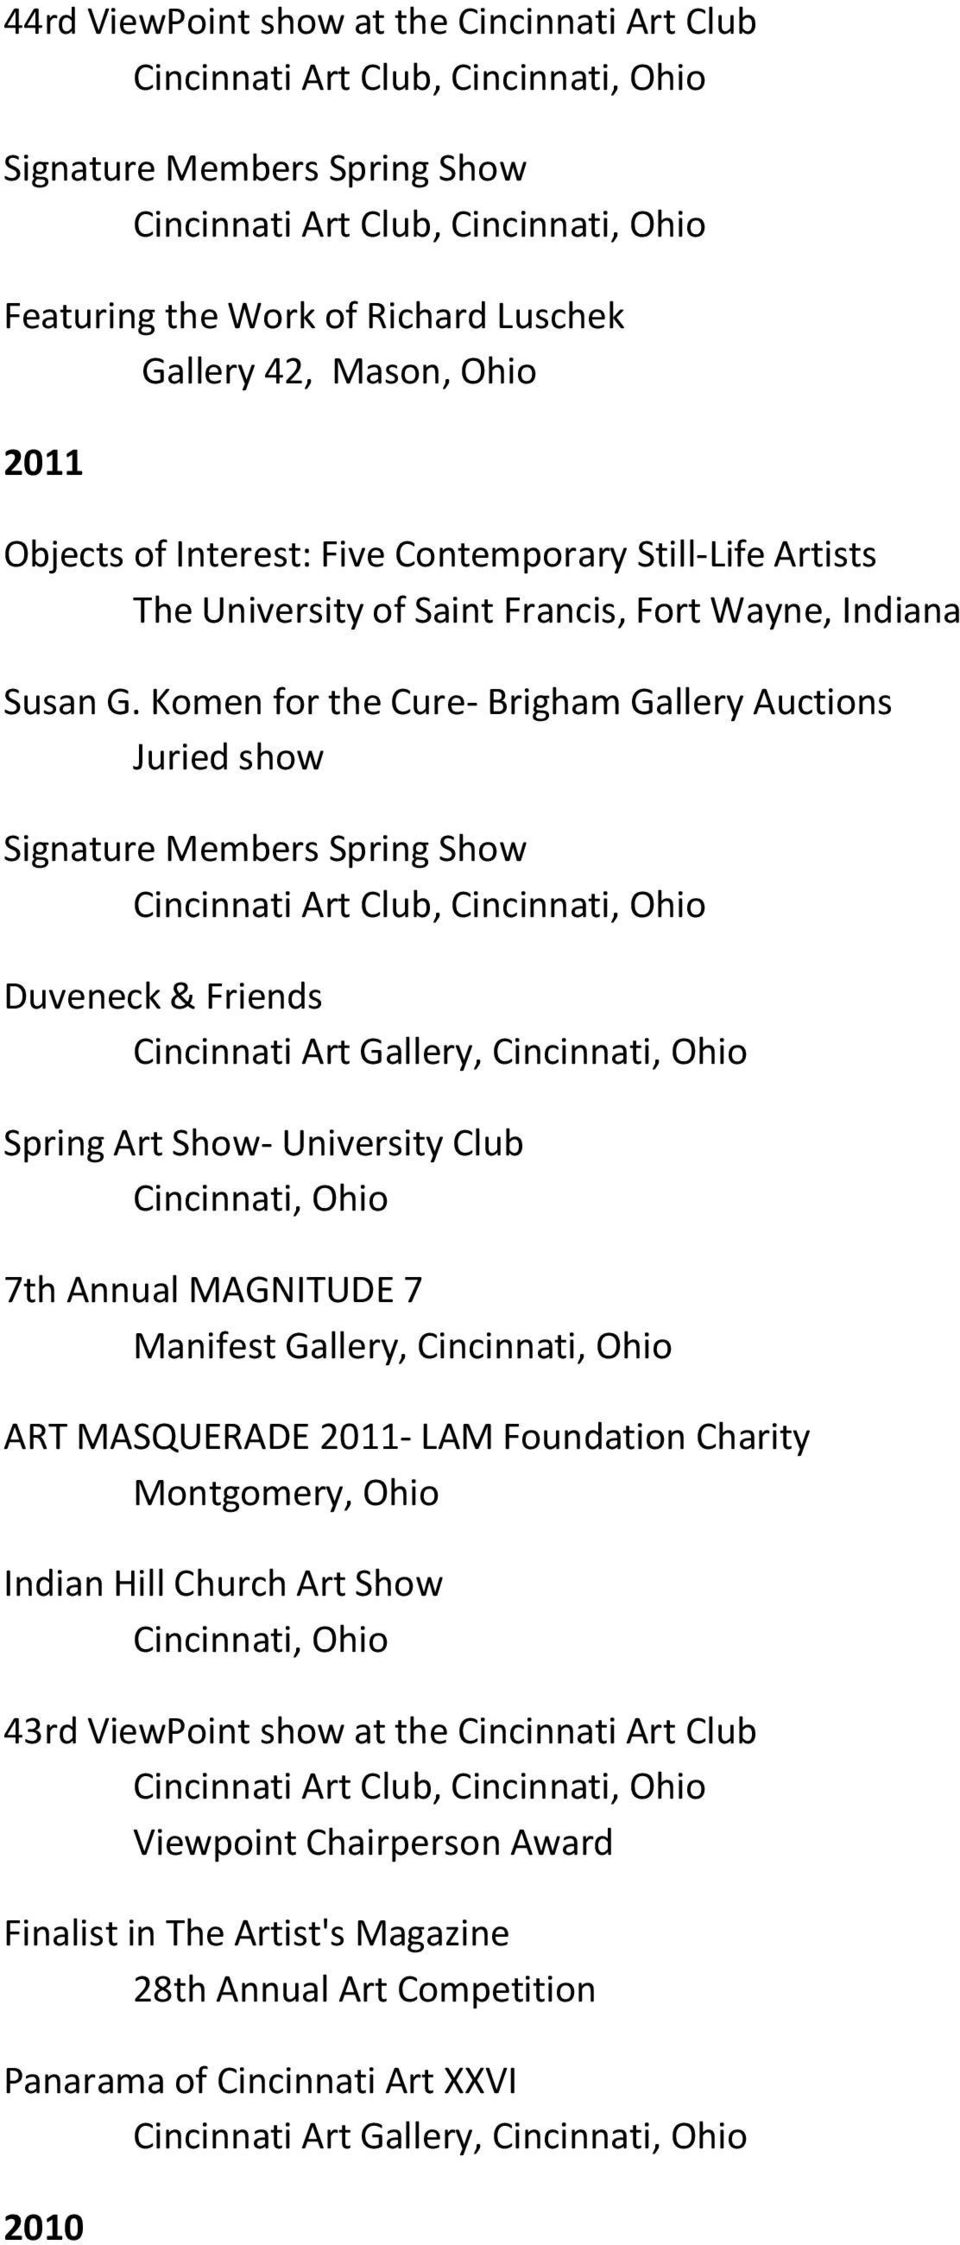 Komen for the Cure- Brigham Gallery Auctions Juried show Duveneck & Friends Cincinnati Art Gallery, Spring Art Show- University Club 7th Annual MAGNITUDE 7 Manifest Gallery,